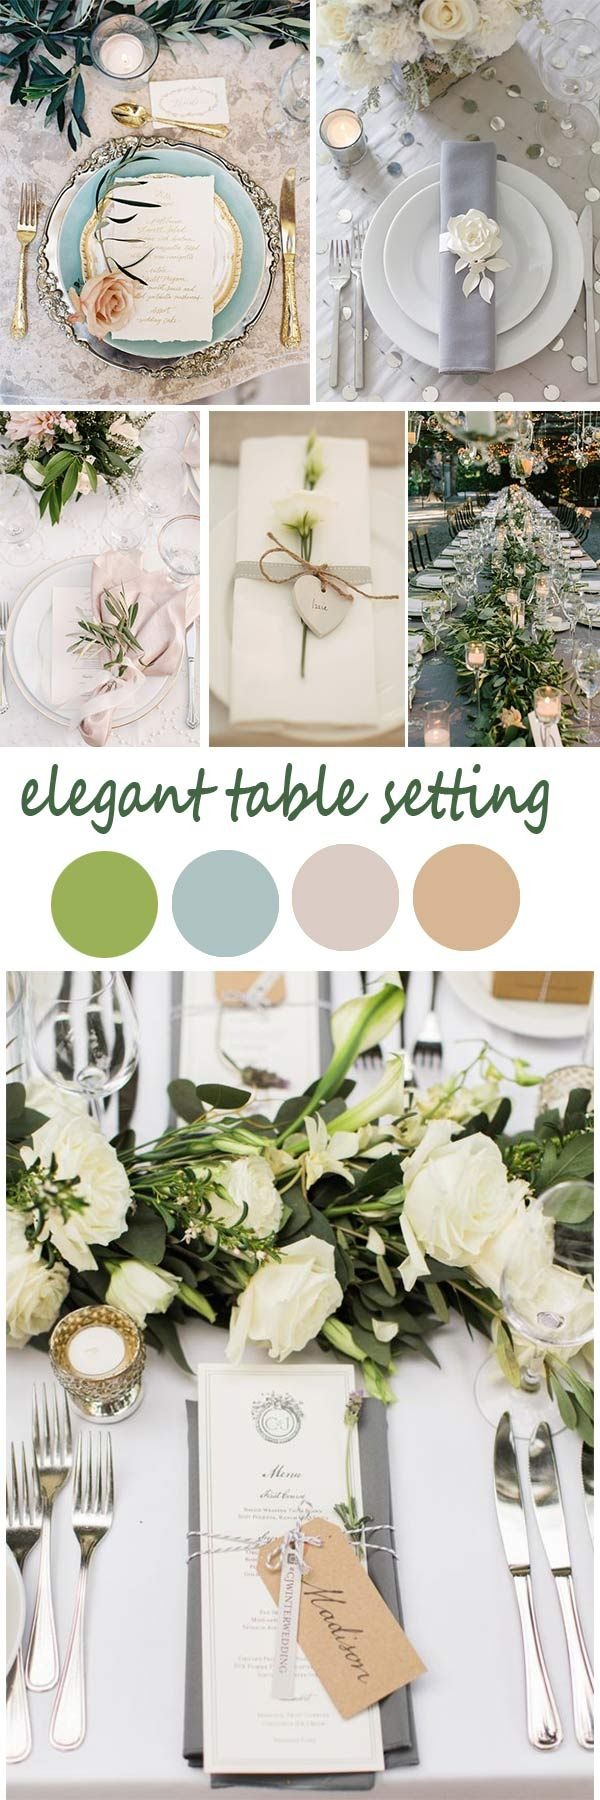 Top 10 Rustic Ideas From 1950s To Rock Your Wedding shade of grey wedding decorations/ rustic wedding ideas/ mint wedding ideas